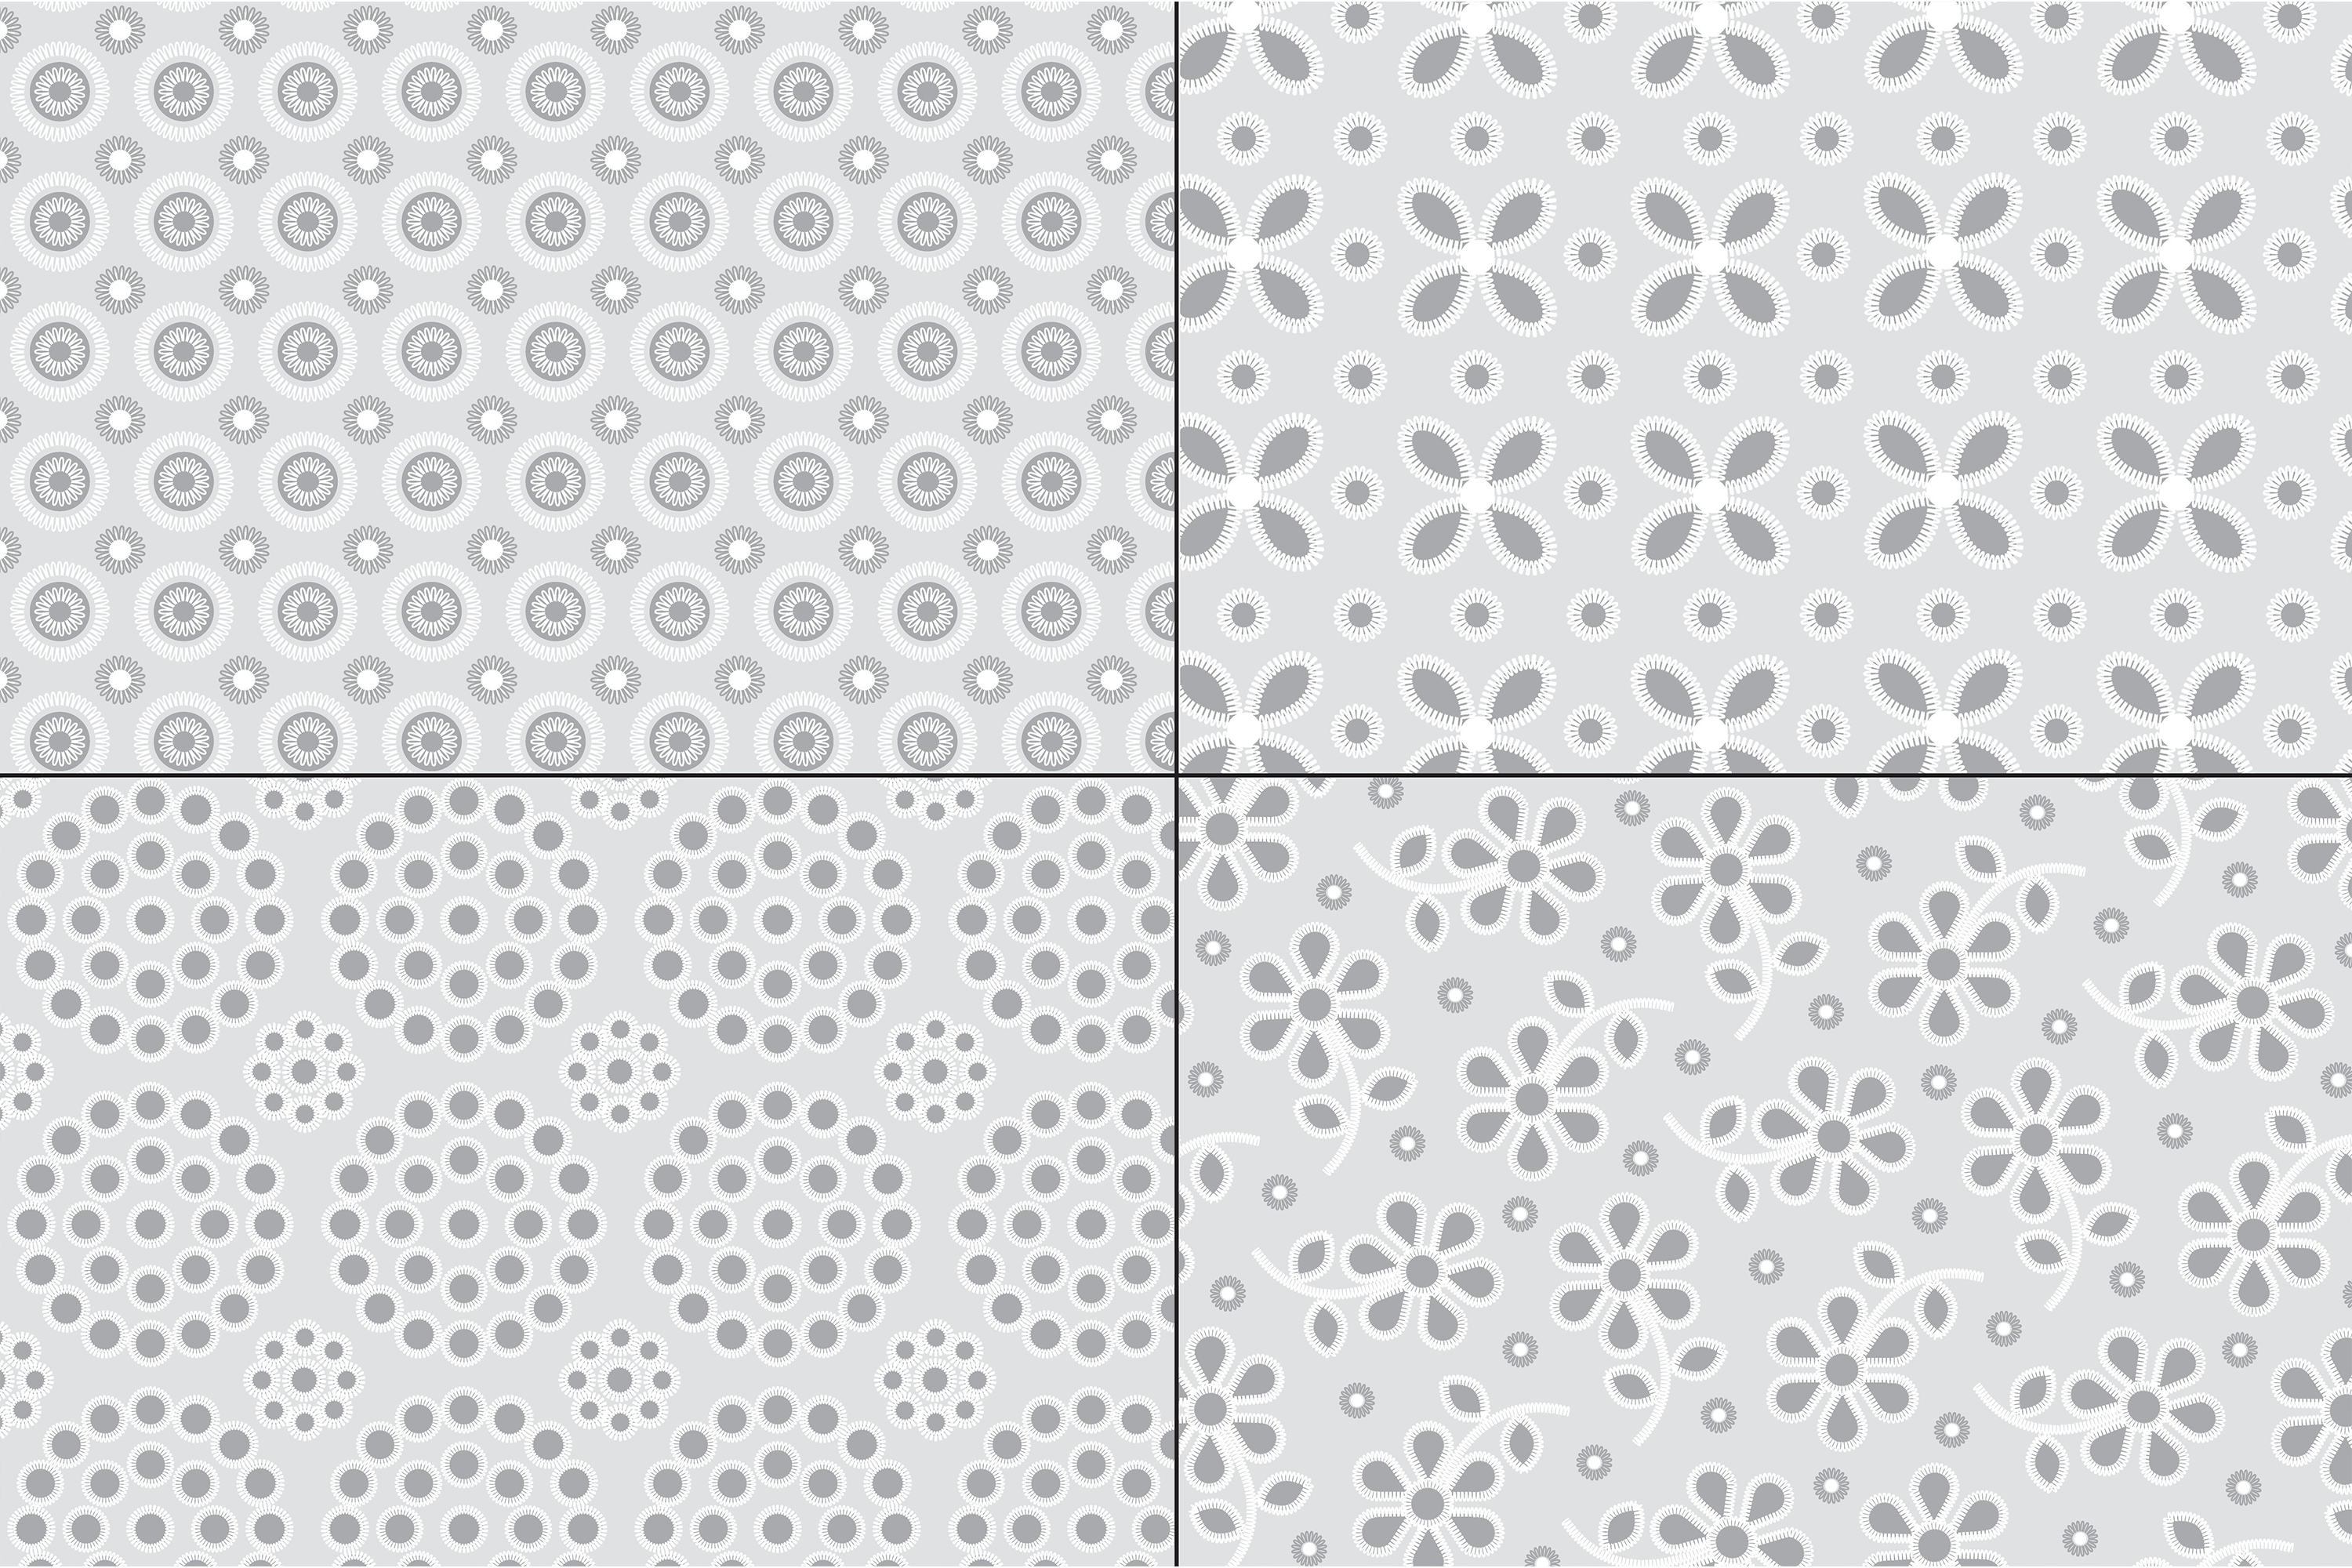 Gray Eyelet Embroidery Patterns example image 3